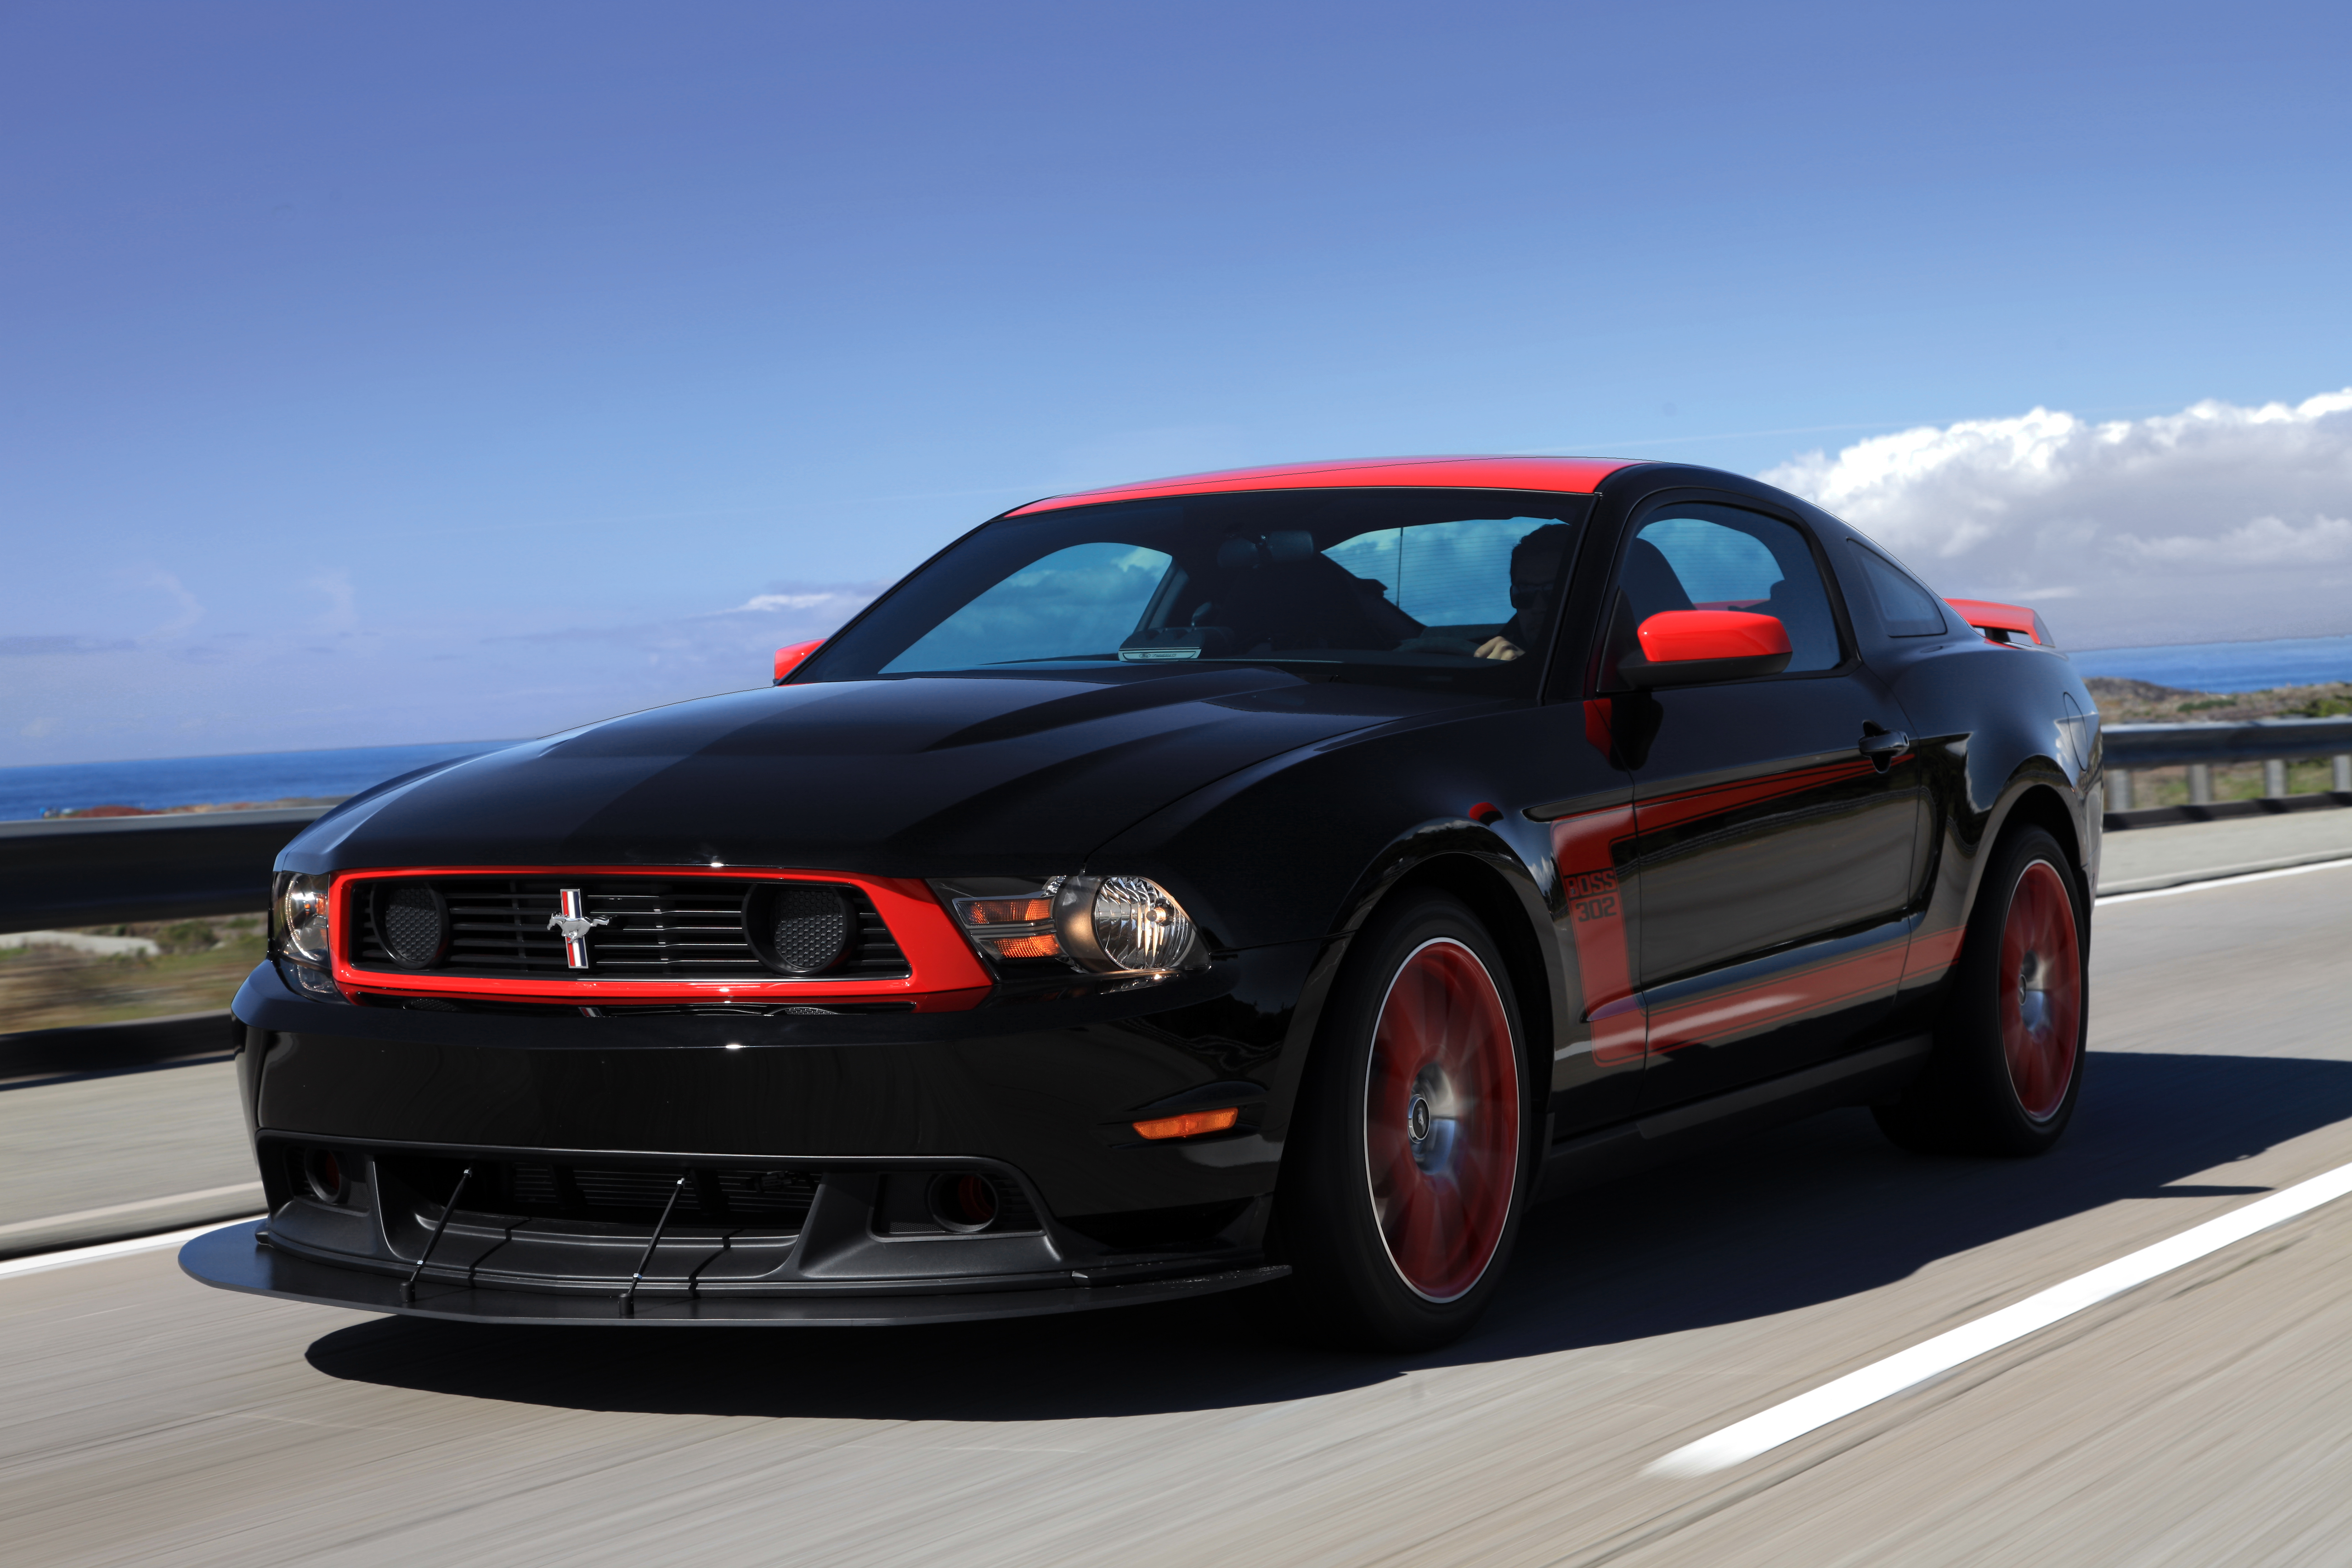 Drivingenthusiast 2012 Mustang Boss 302 Hd Images Page 1